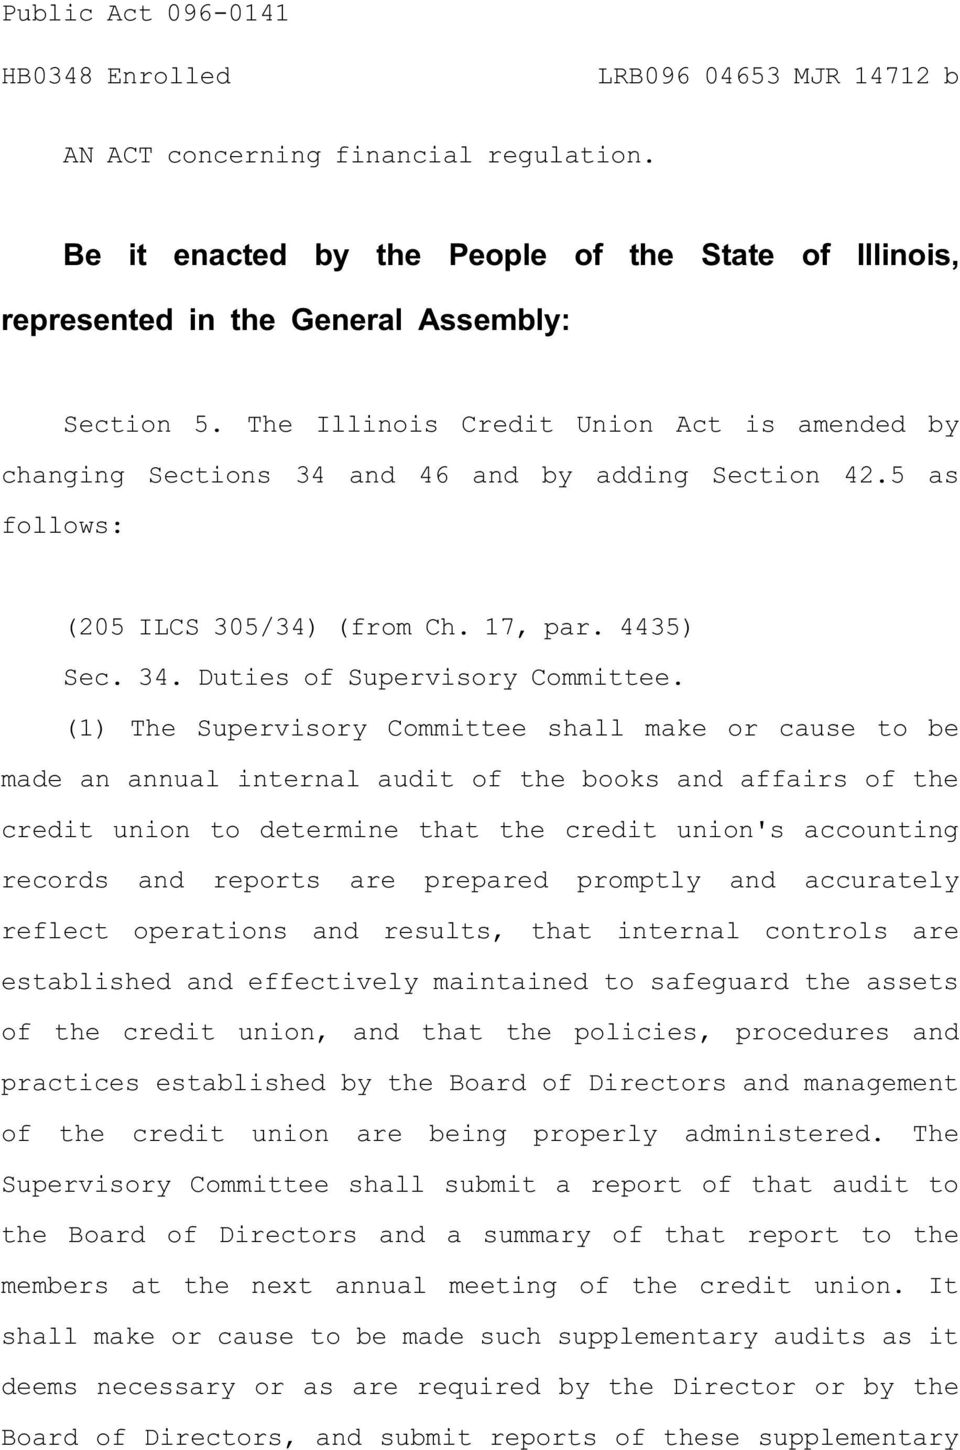 (1) The Supervisory Committee shall make or cause to be made an annual internal audit of the books and affairs of the credit union to determine that the credit union's accounting records and reports